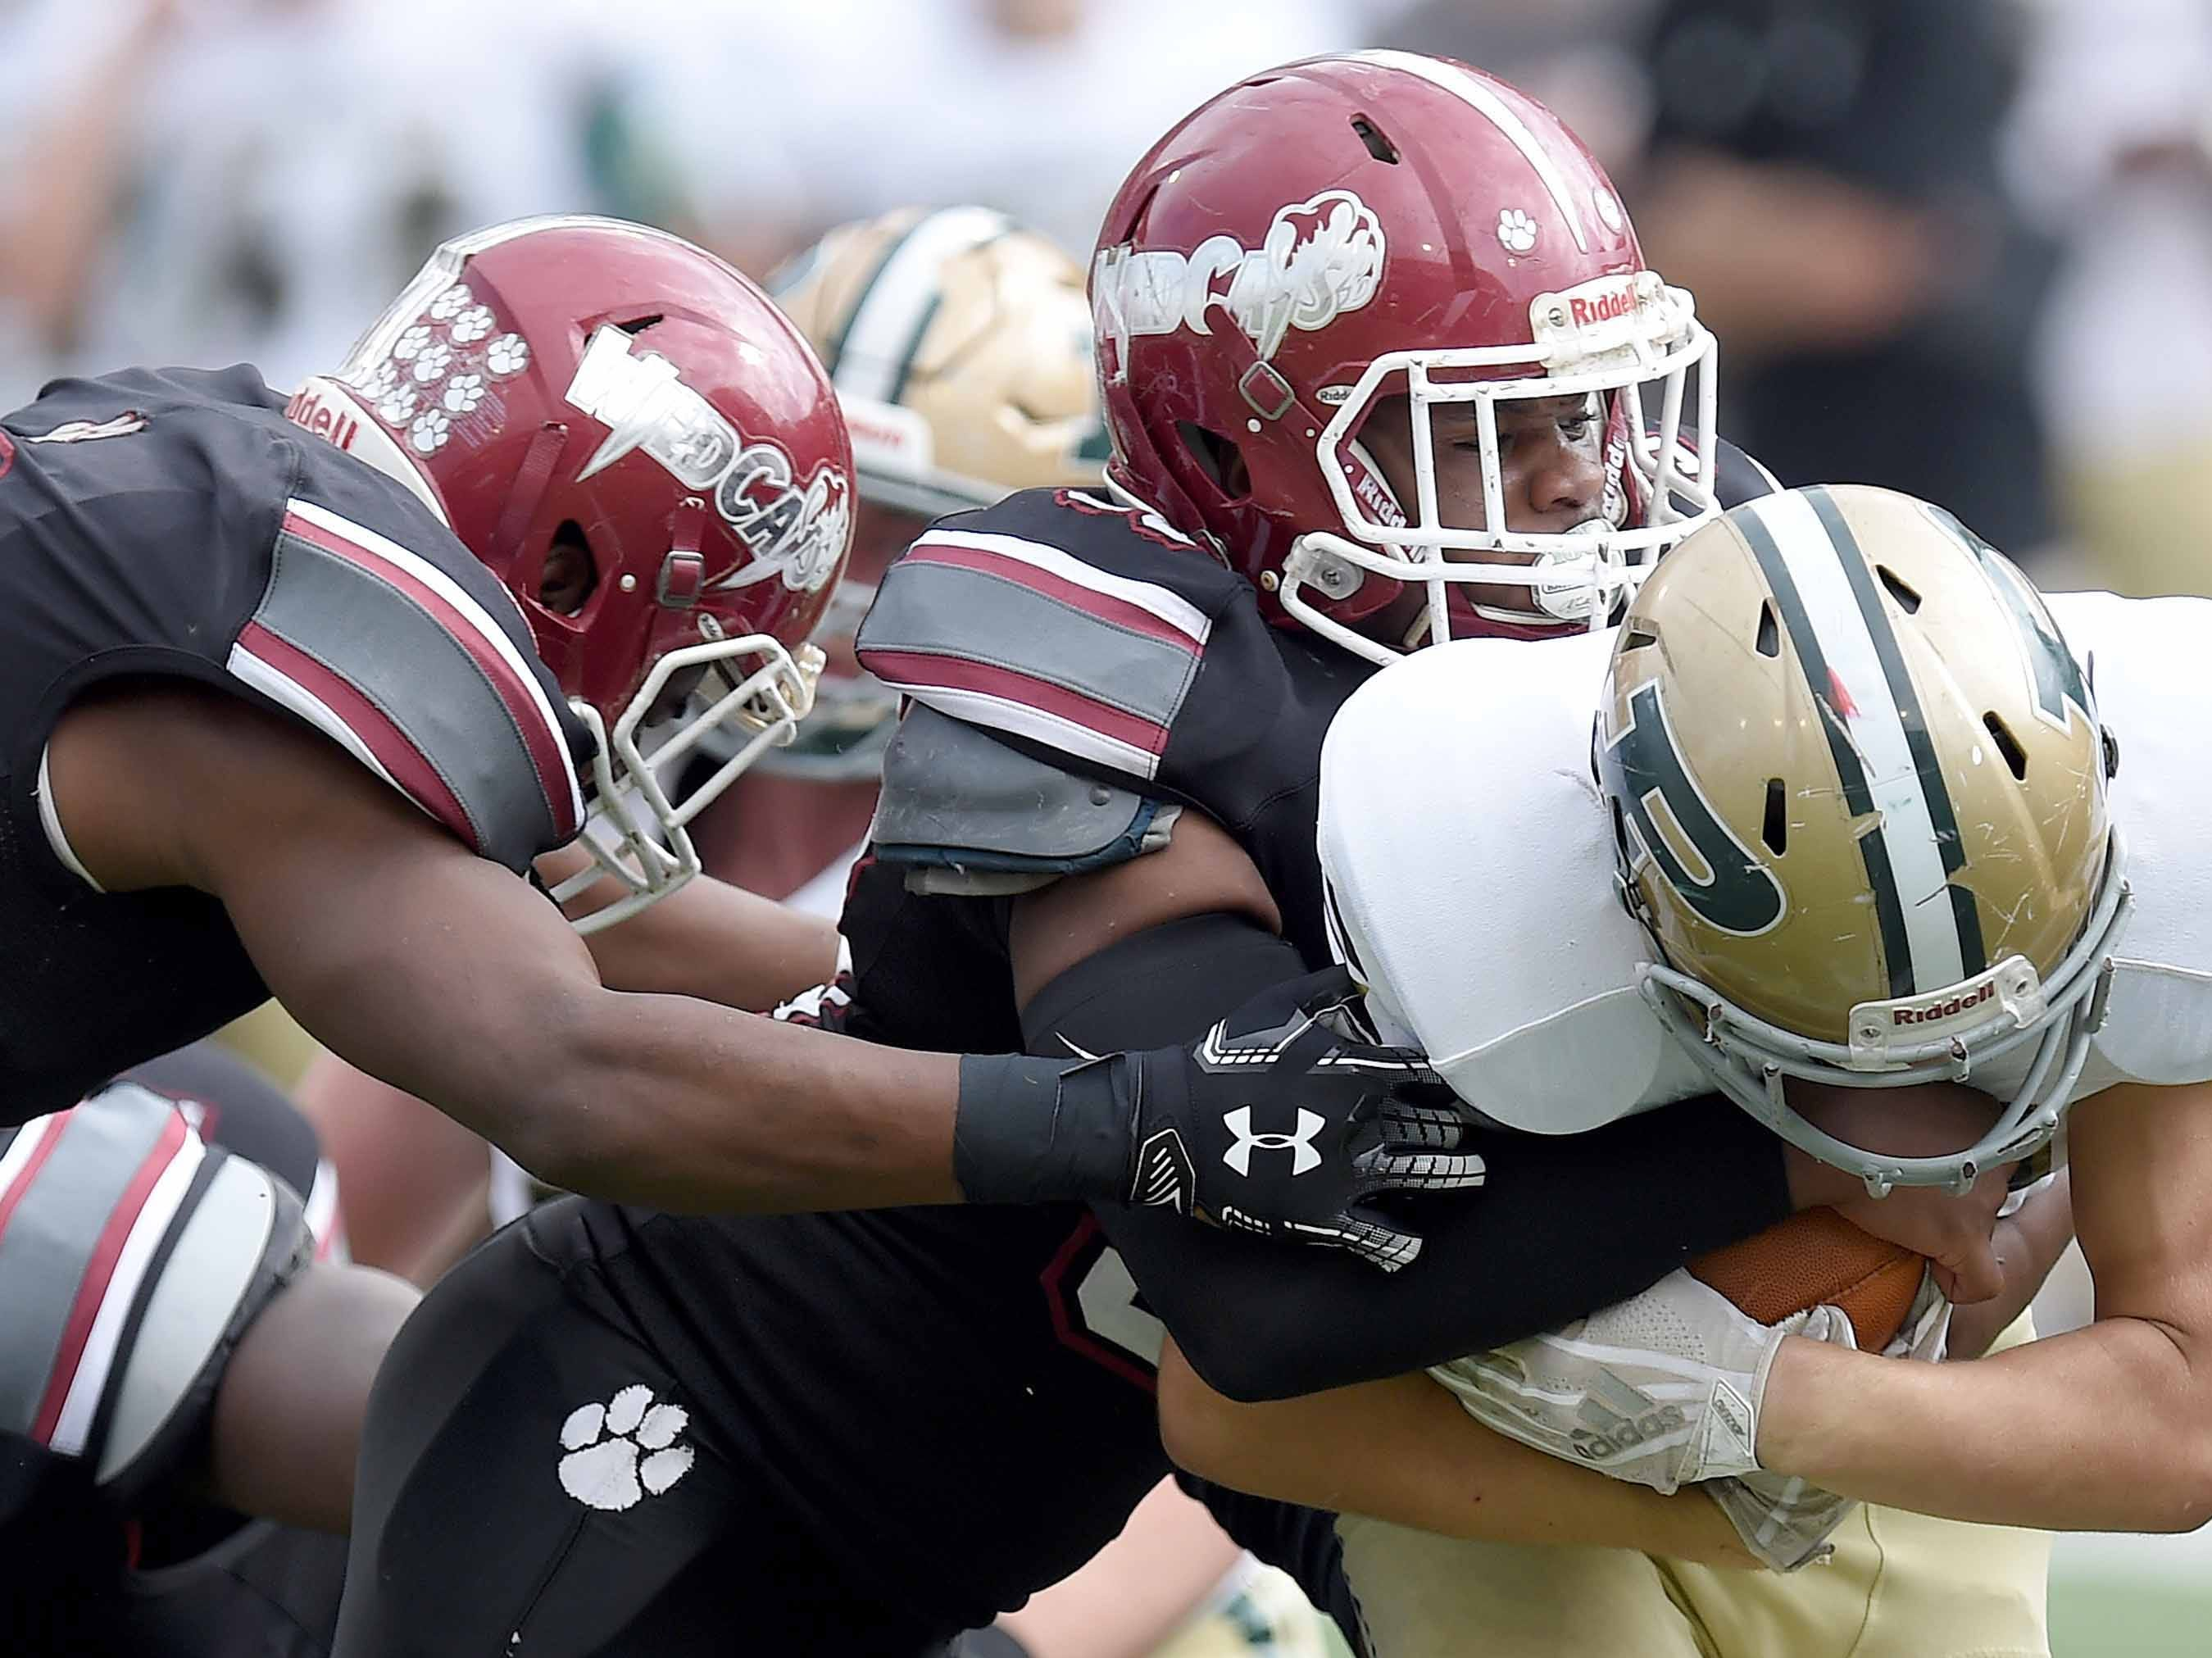 The Louisville defense tackles a Poplarville ball carrier on Saturday, December 1, 2018, in the MHSAA BlueCross BlueShield Gridiron Classic High School Football Championships in M.M. Roberts Stadium on the University of Southern Mississippi campus in Hattiesburg, Miss.